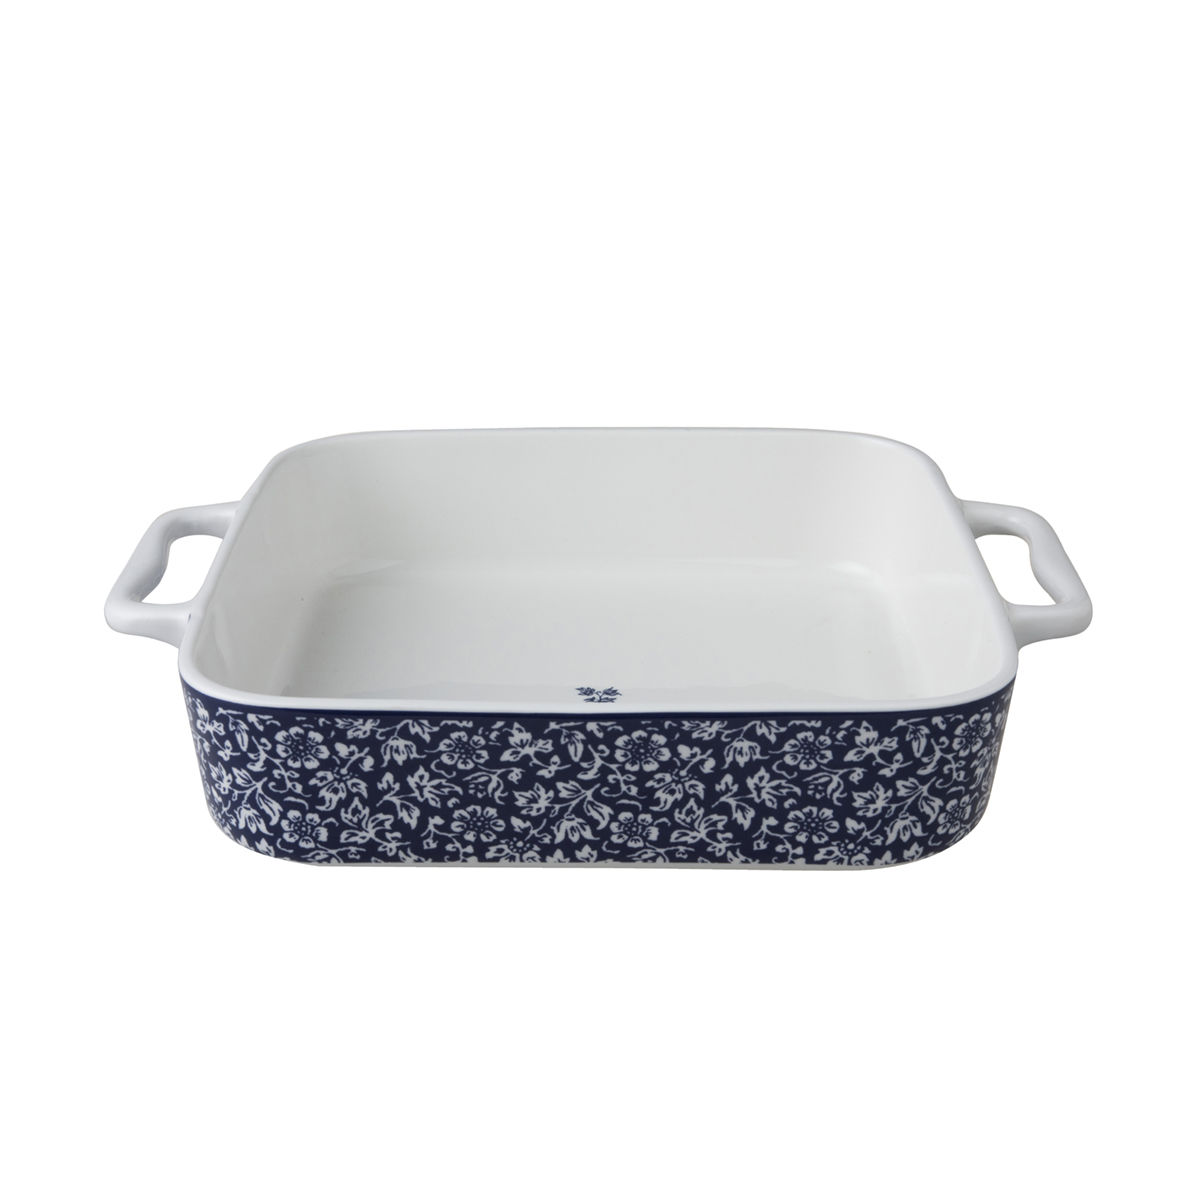 "Laura Ashley Oven Dish 9""x9"" - product images  of"